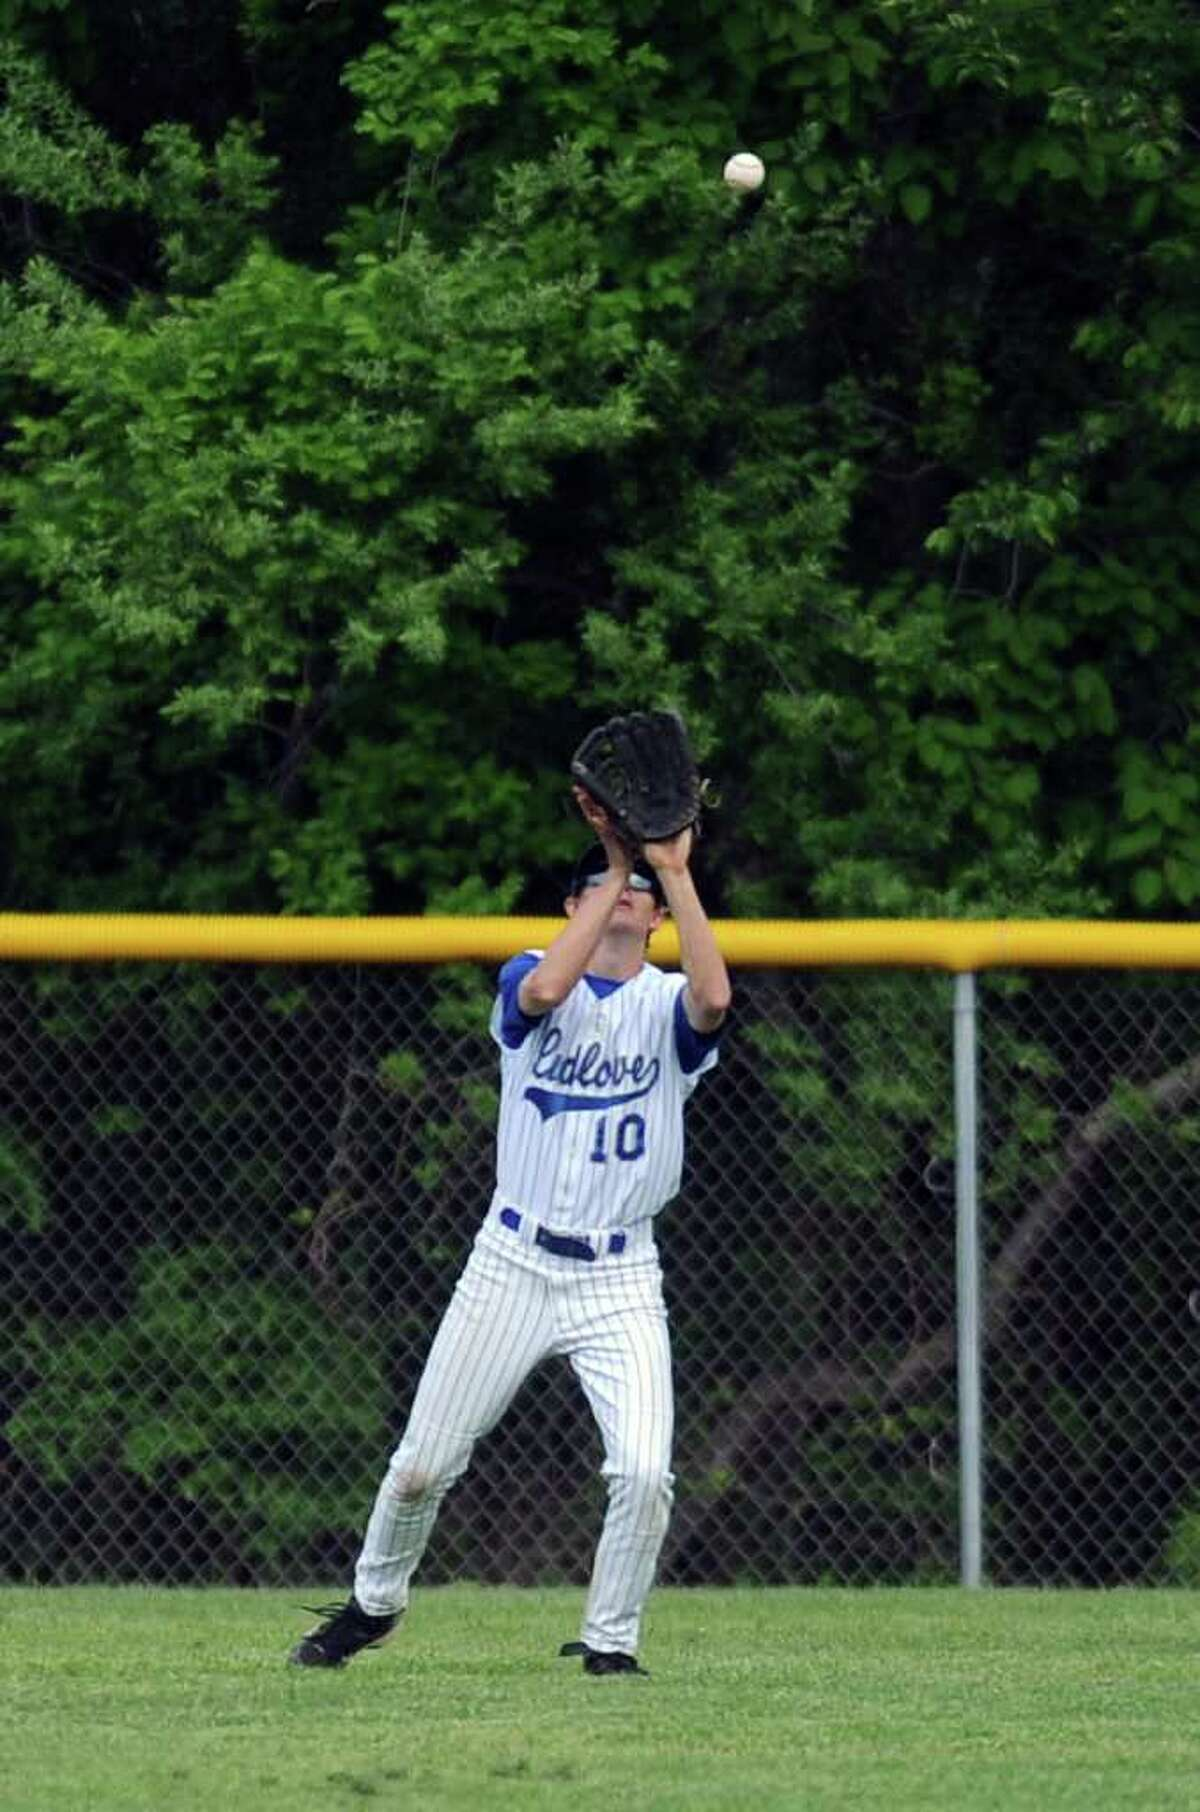 Ludlowe's Alex Wright makes a catch in the outfield during Friday's game against Ridgefield at Fairfield Ludlowe High School on May 20, 2011.